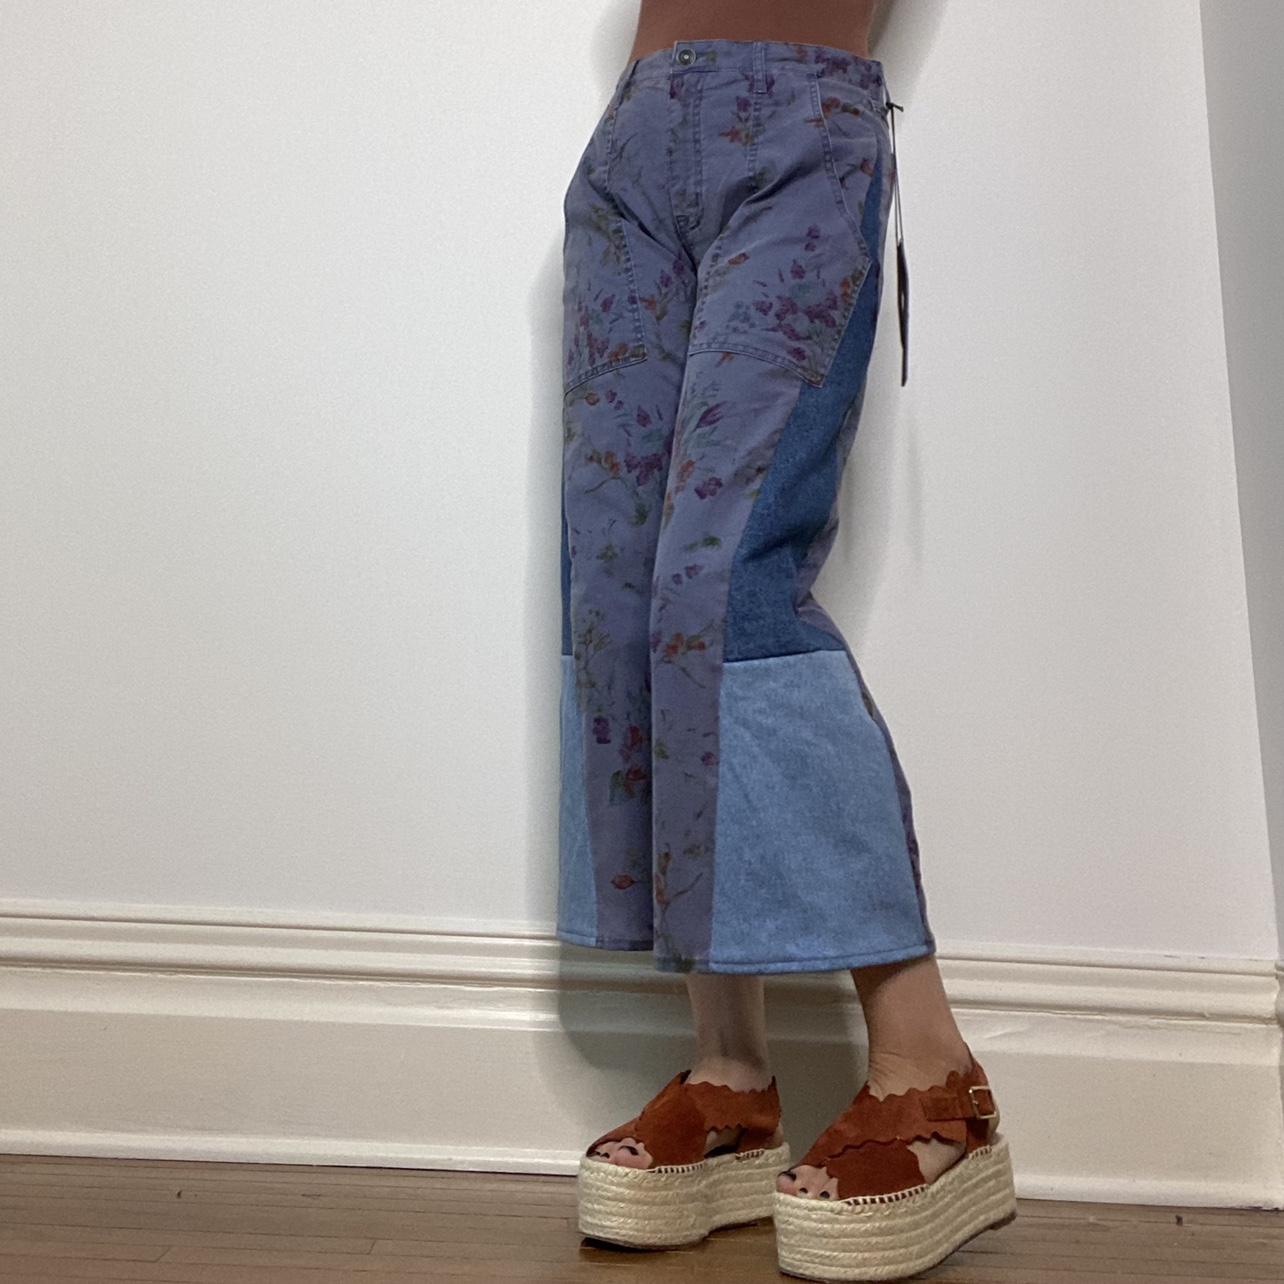 Product Image 1 - Hudson Jeans x Made by